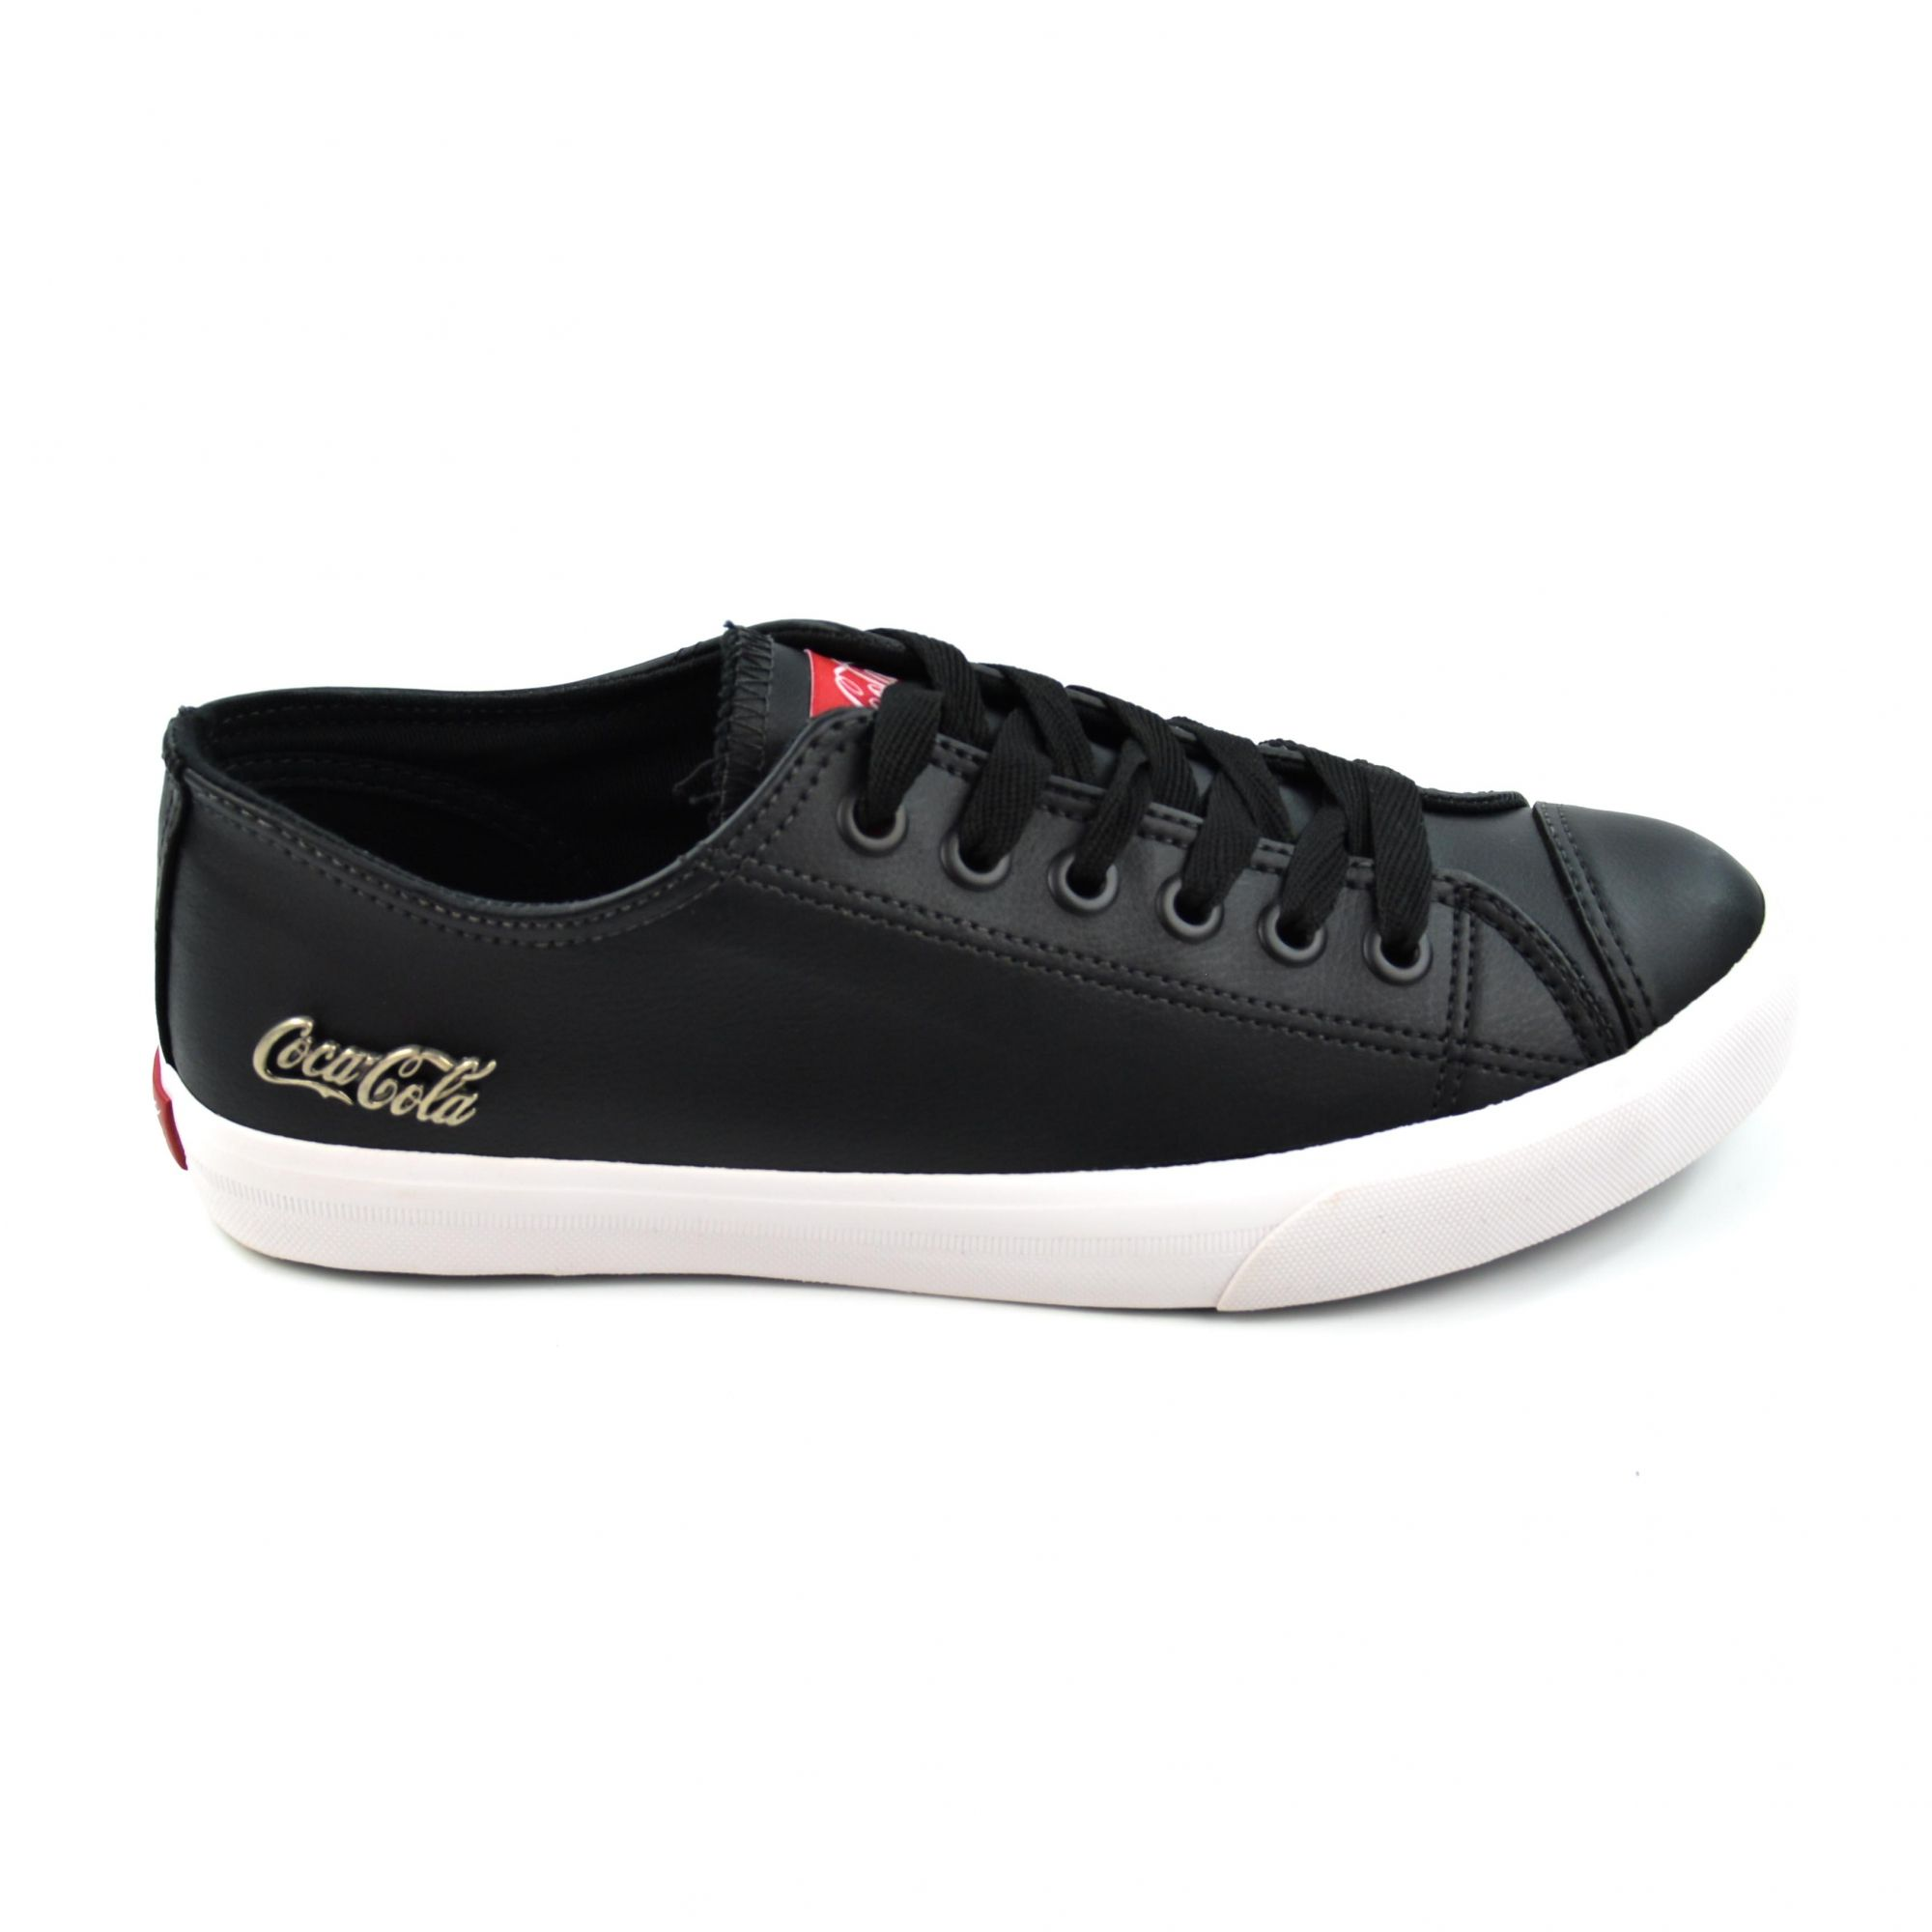 TENIS BASKET FLOATER LOW PRETO 0887 COCA-COLA 13814